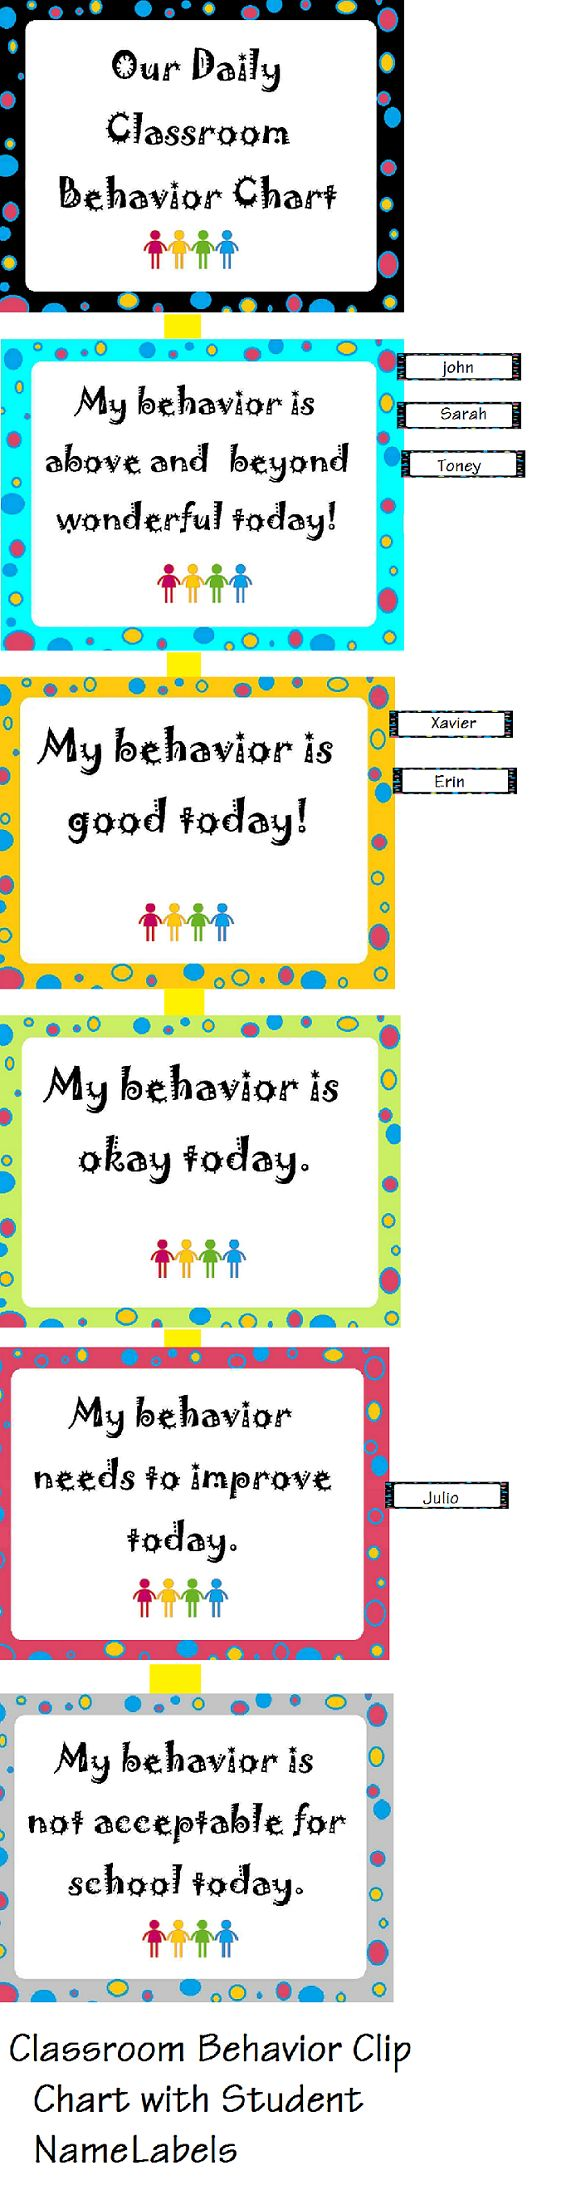 behavior clip chart with name labels I love this!!! For all the children that have an extra great day:)